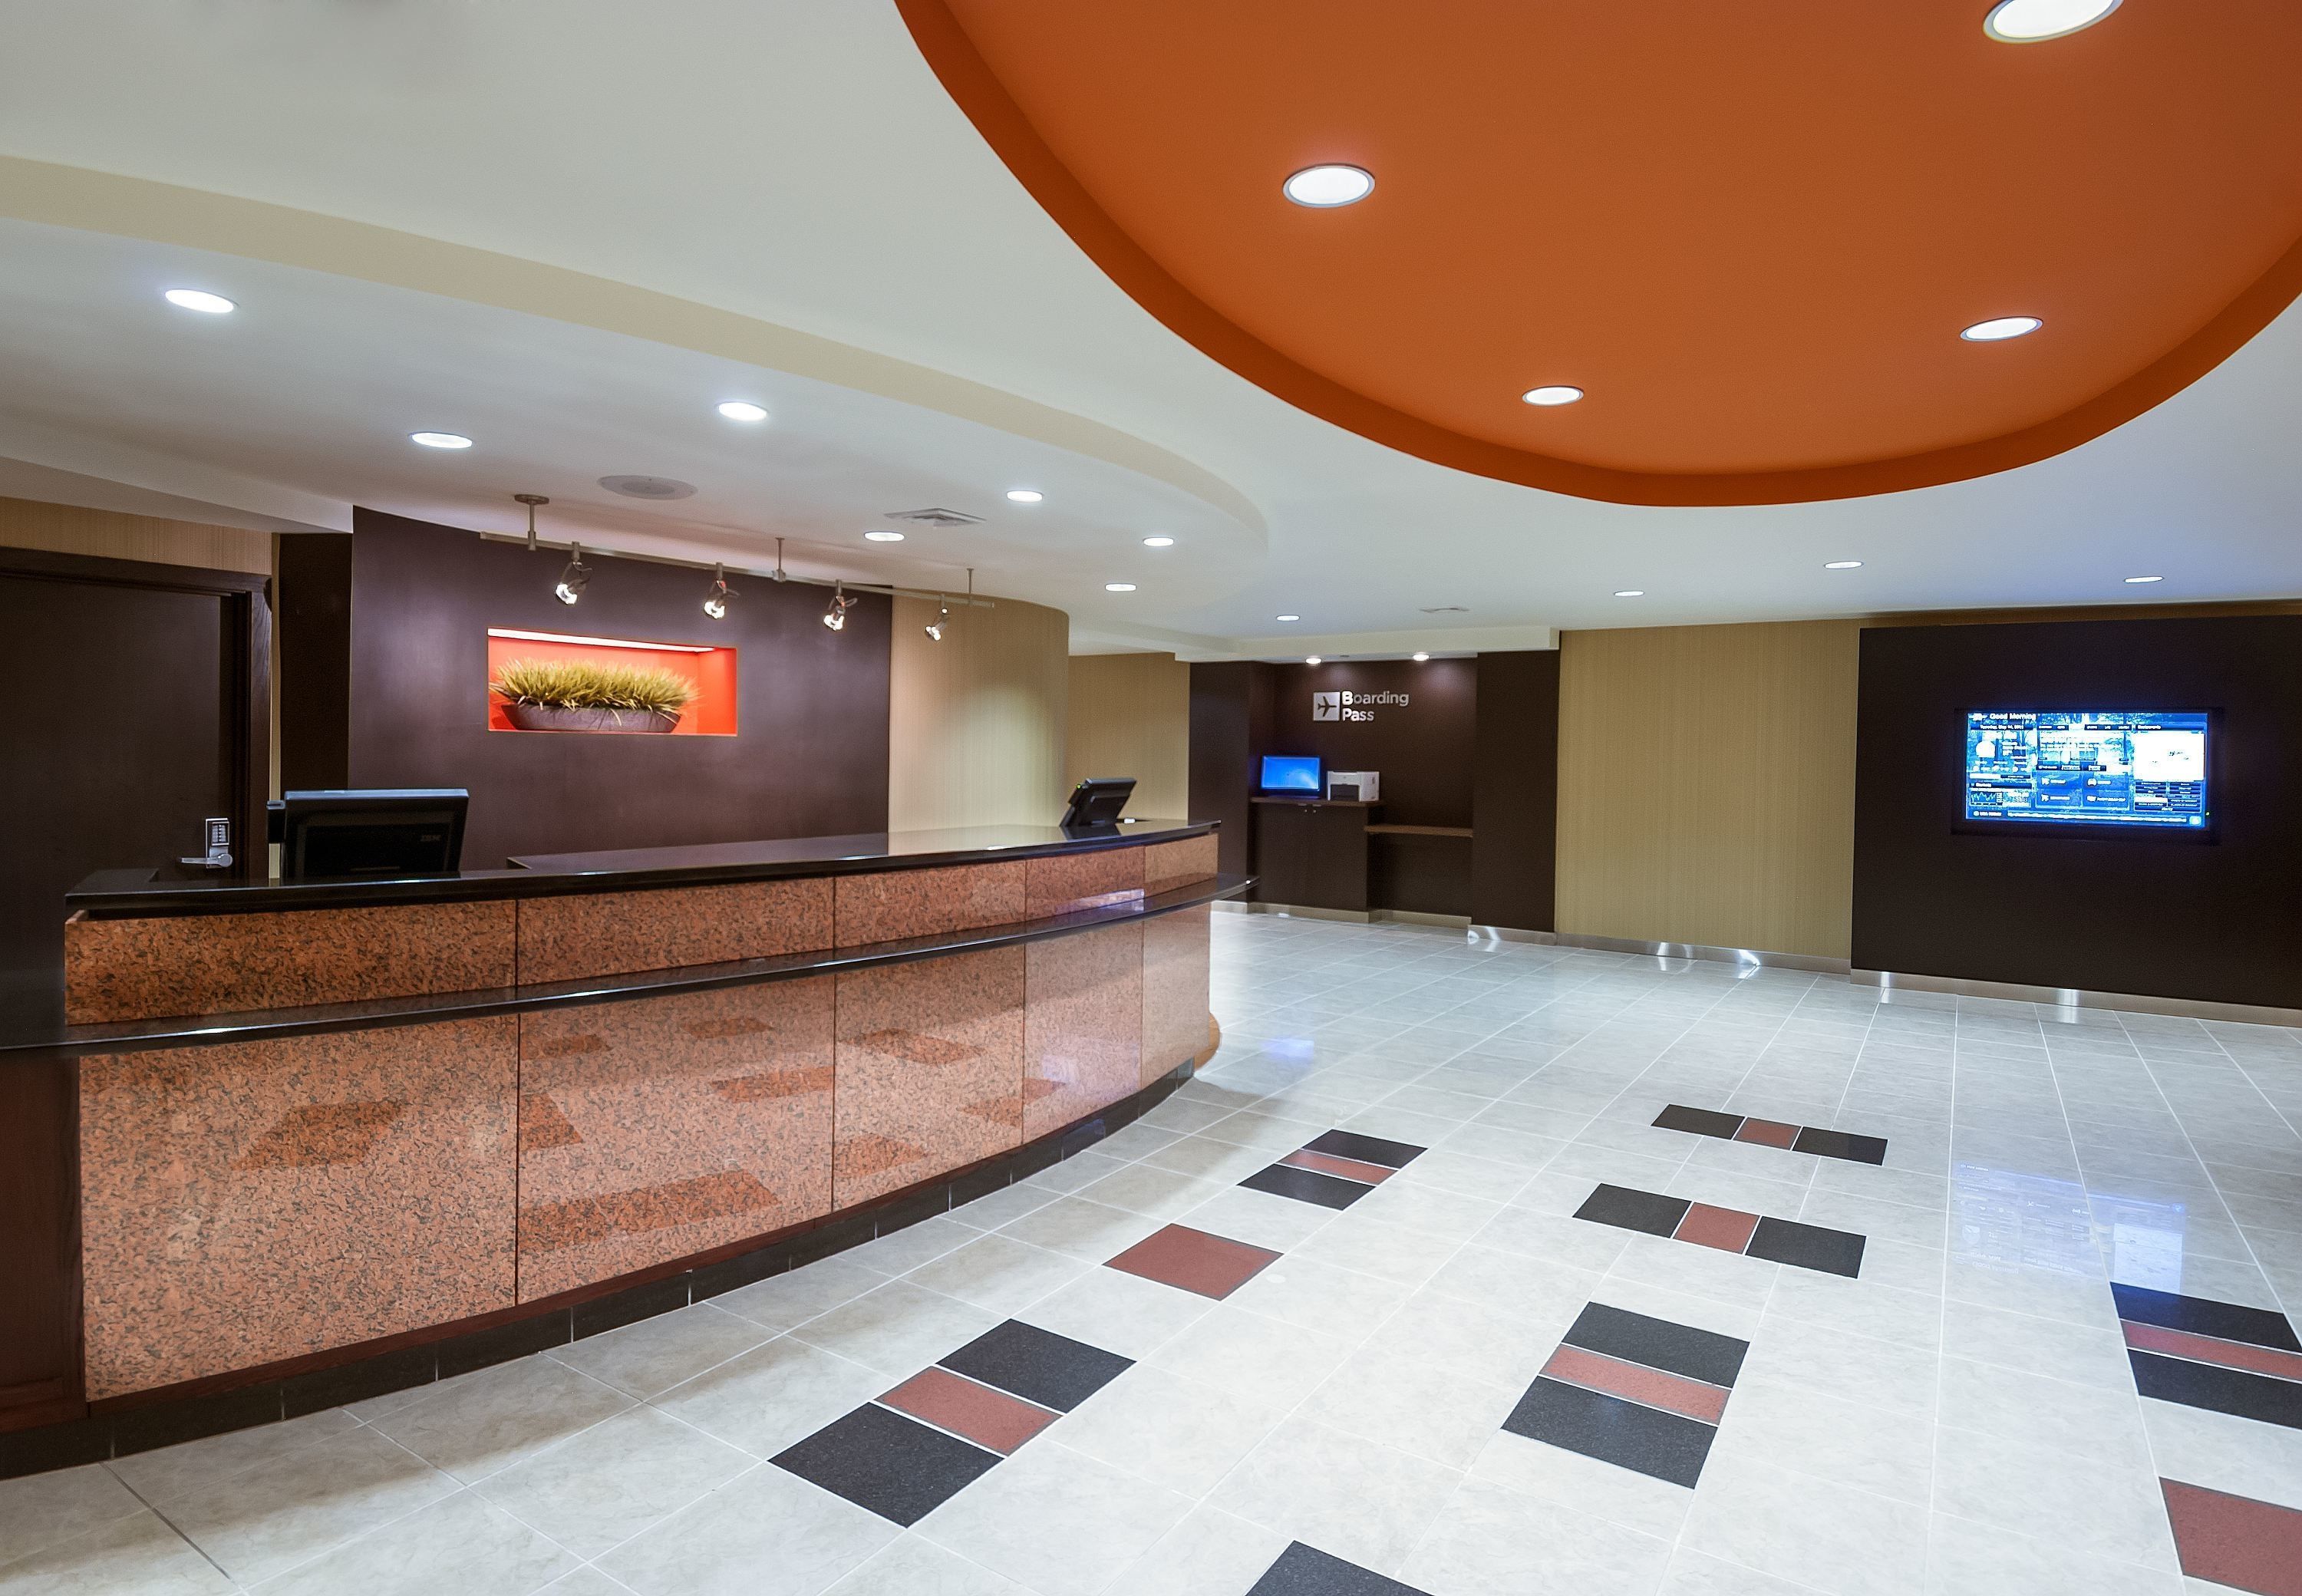 Courtyard by Marriott Boston Marlborough image 11